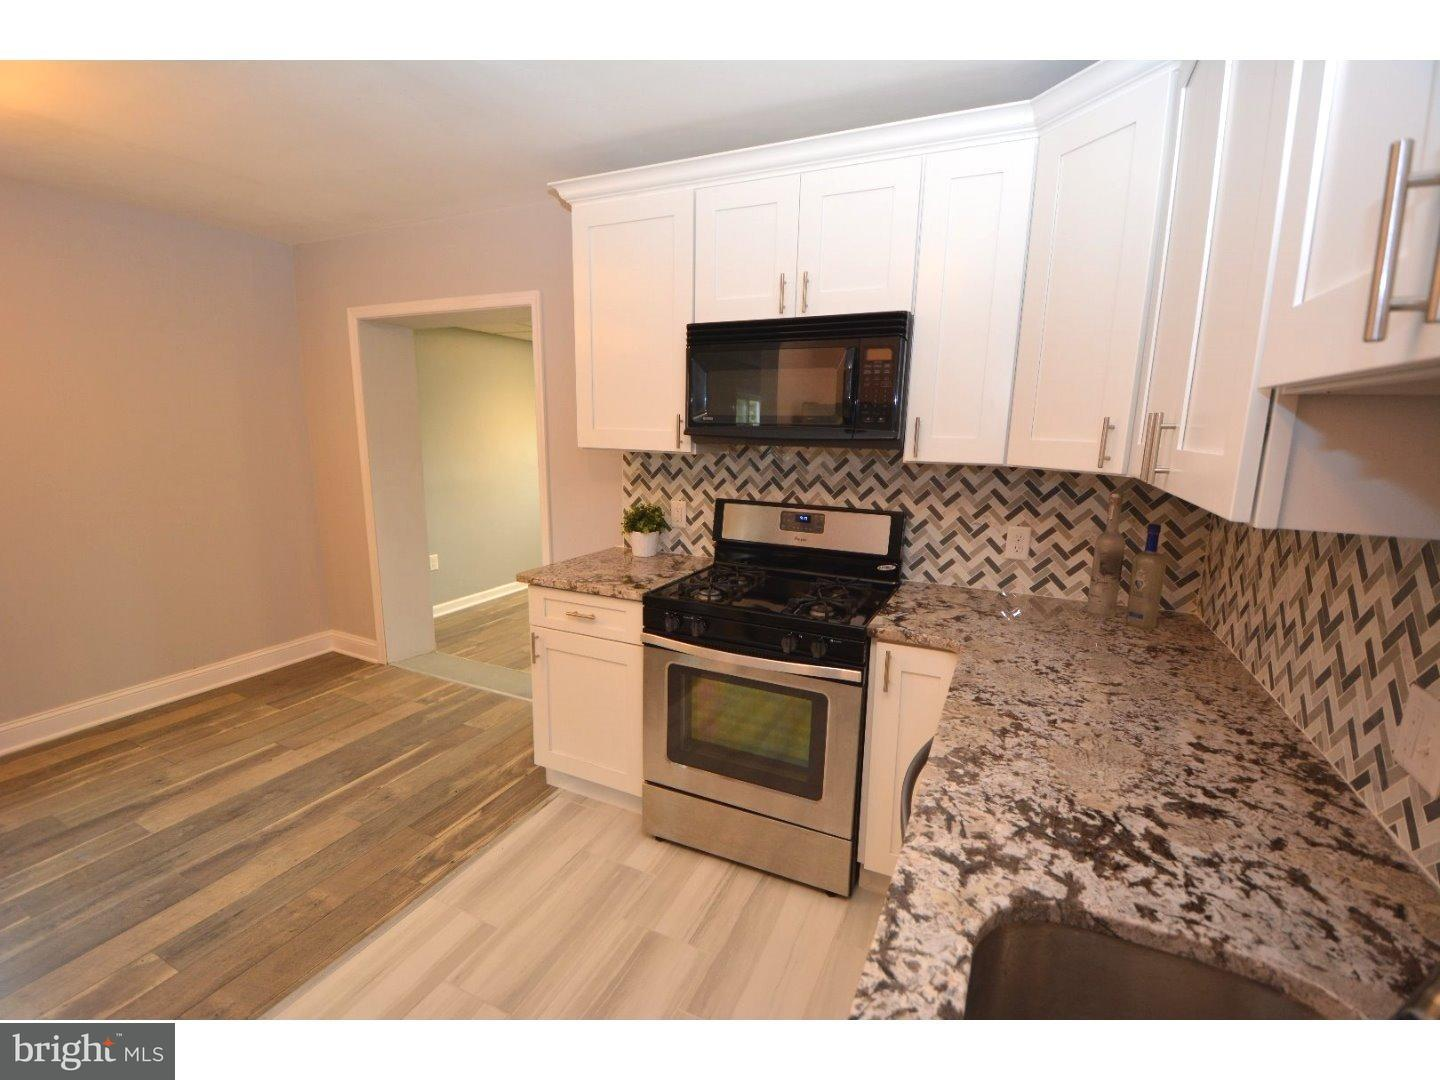 134 W GARRISON RD, BROOKHAVEN - Listed at $170,000, BROOKHAVEN